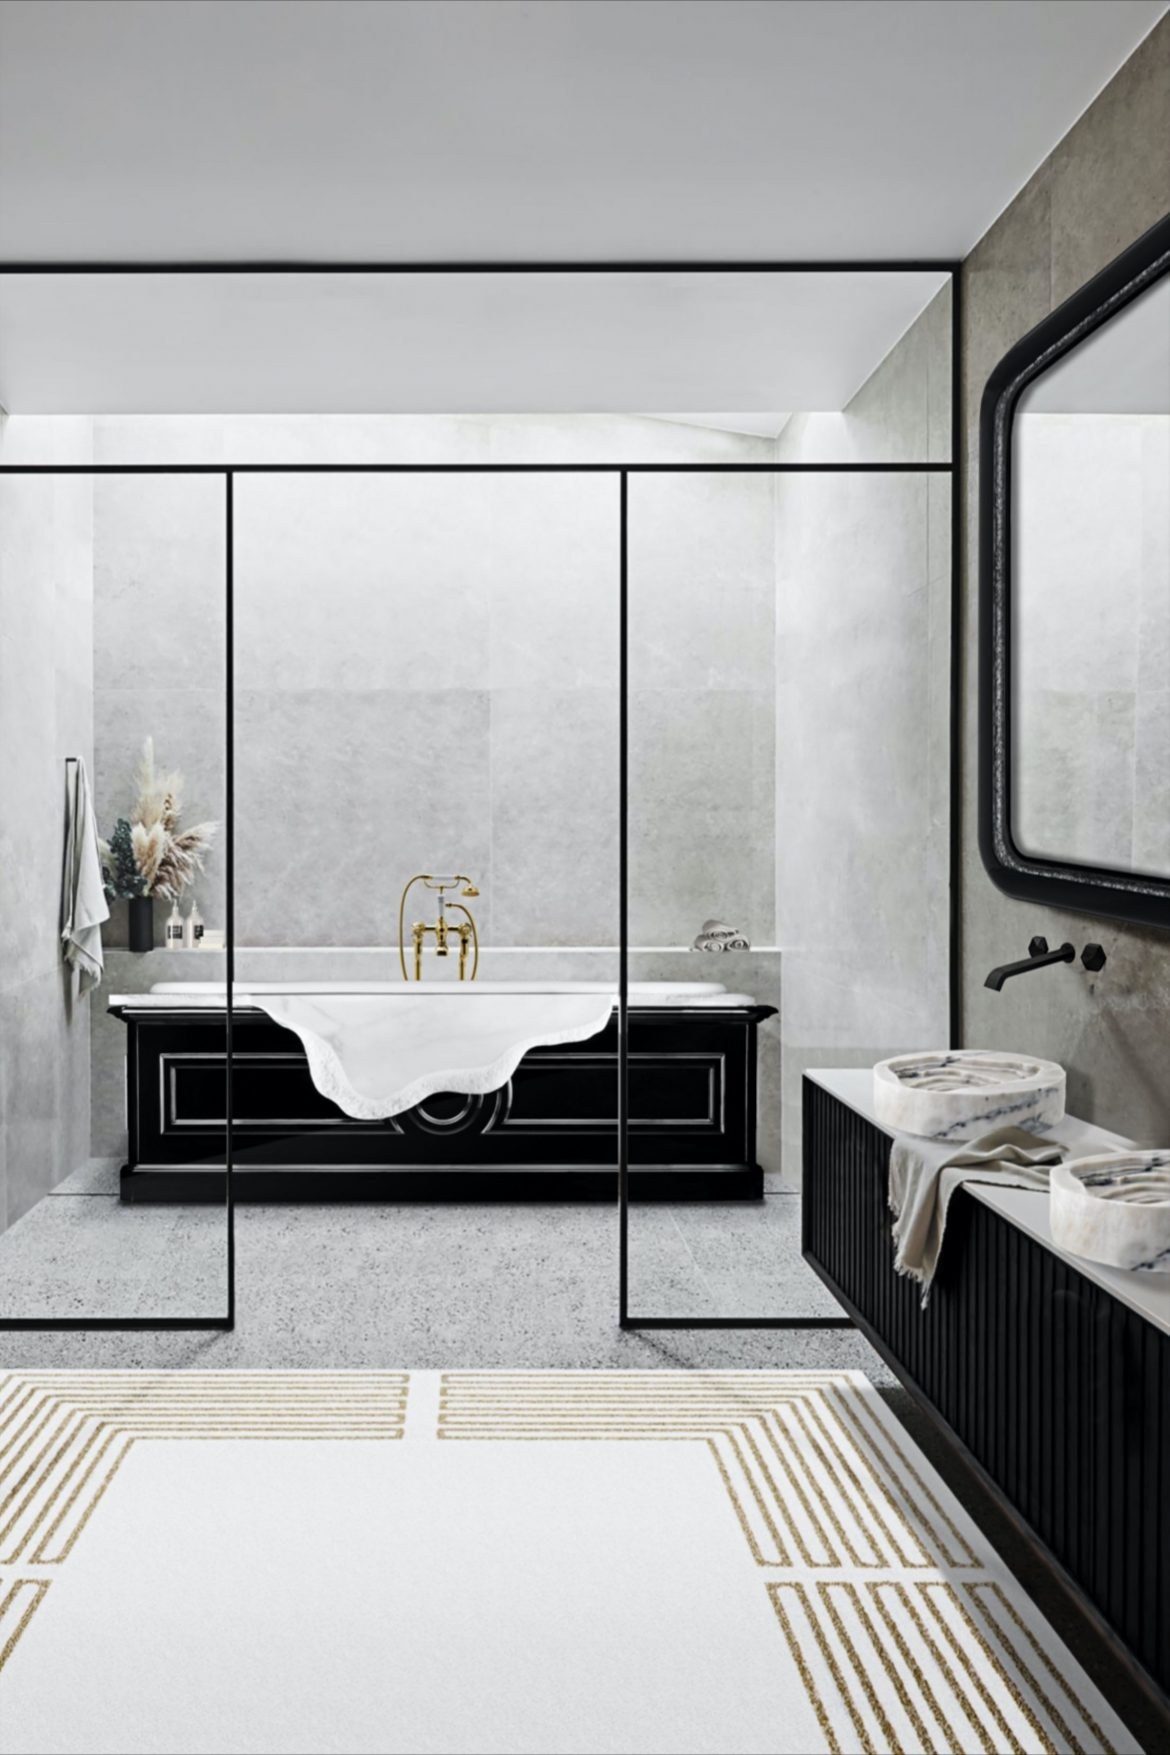 13 Bathtubs That Will Transform Your Bathroom bathtubs 13 Bathtubs That Will Transform Your Bathroom 1ef17155840f763dcc3eab7e1d9401a5